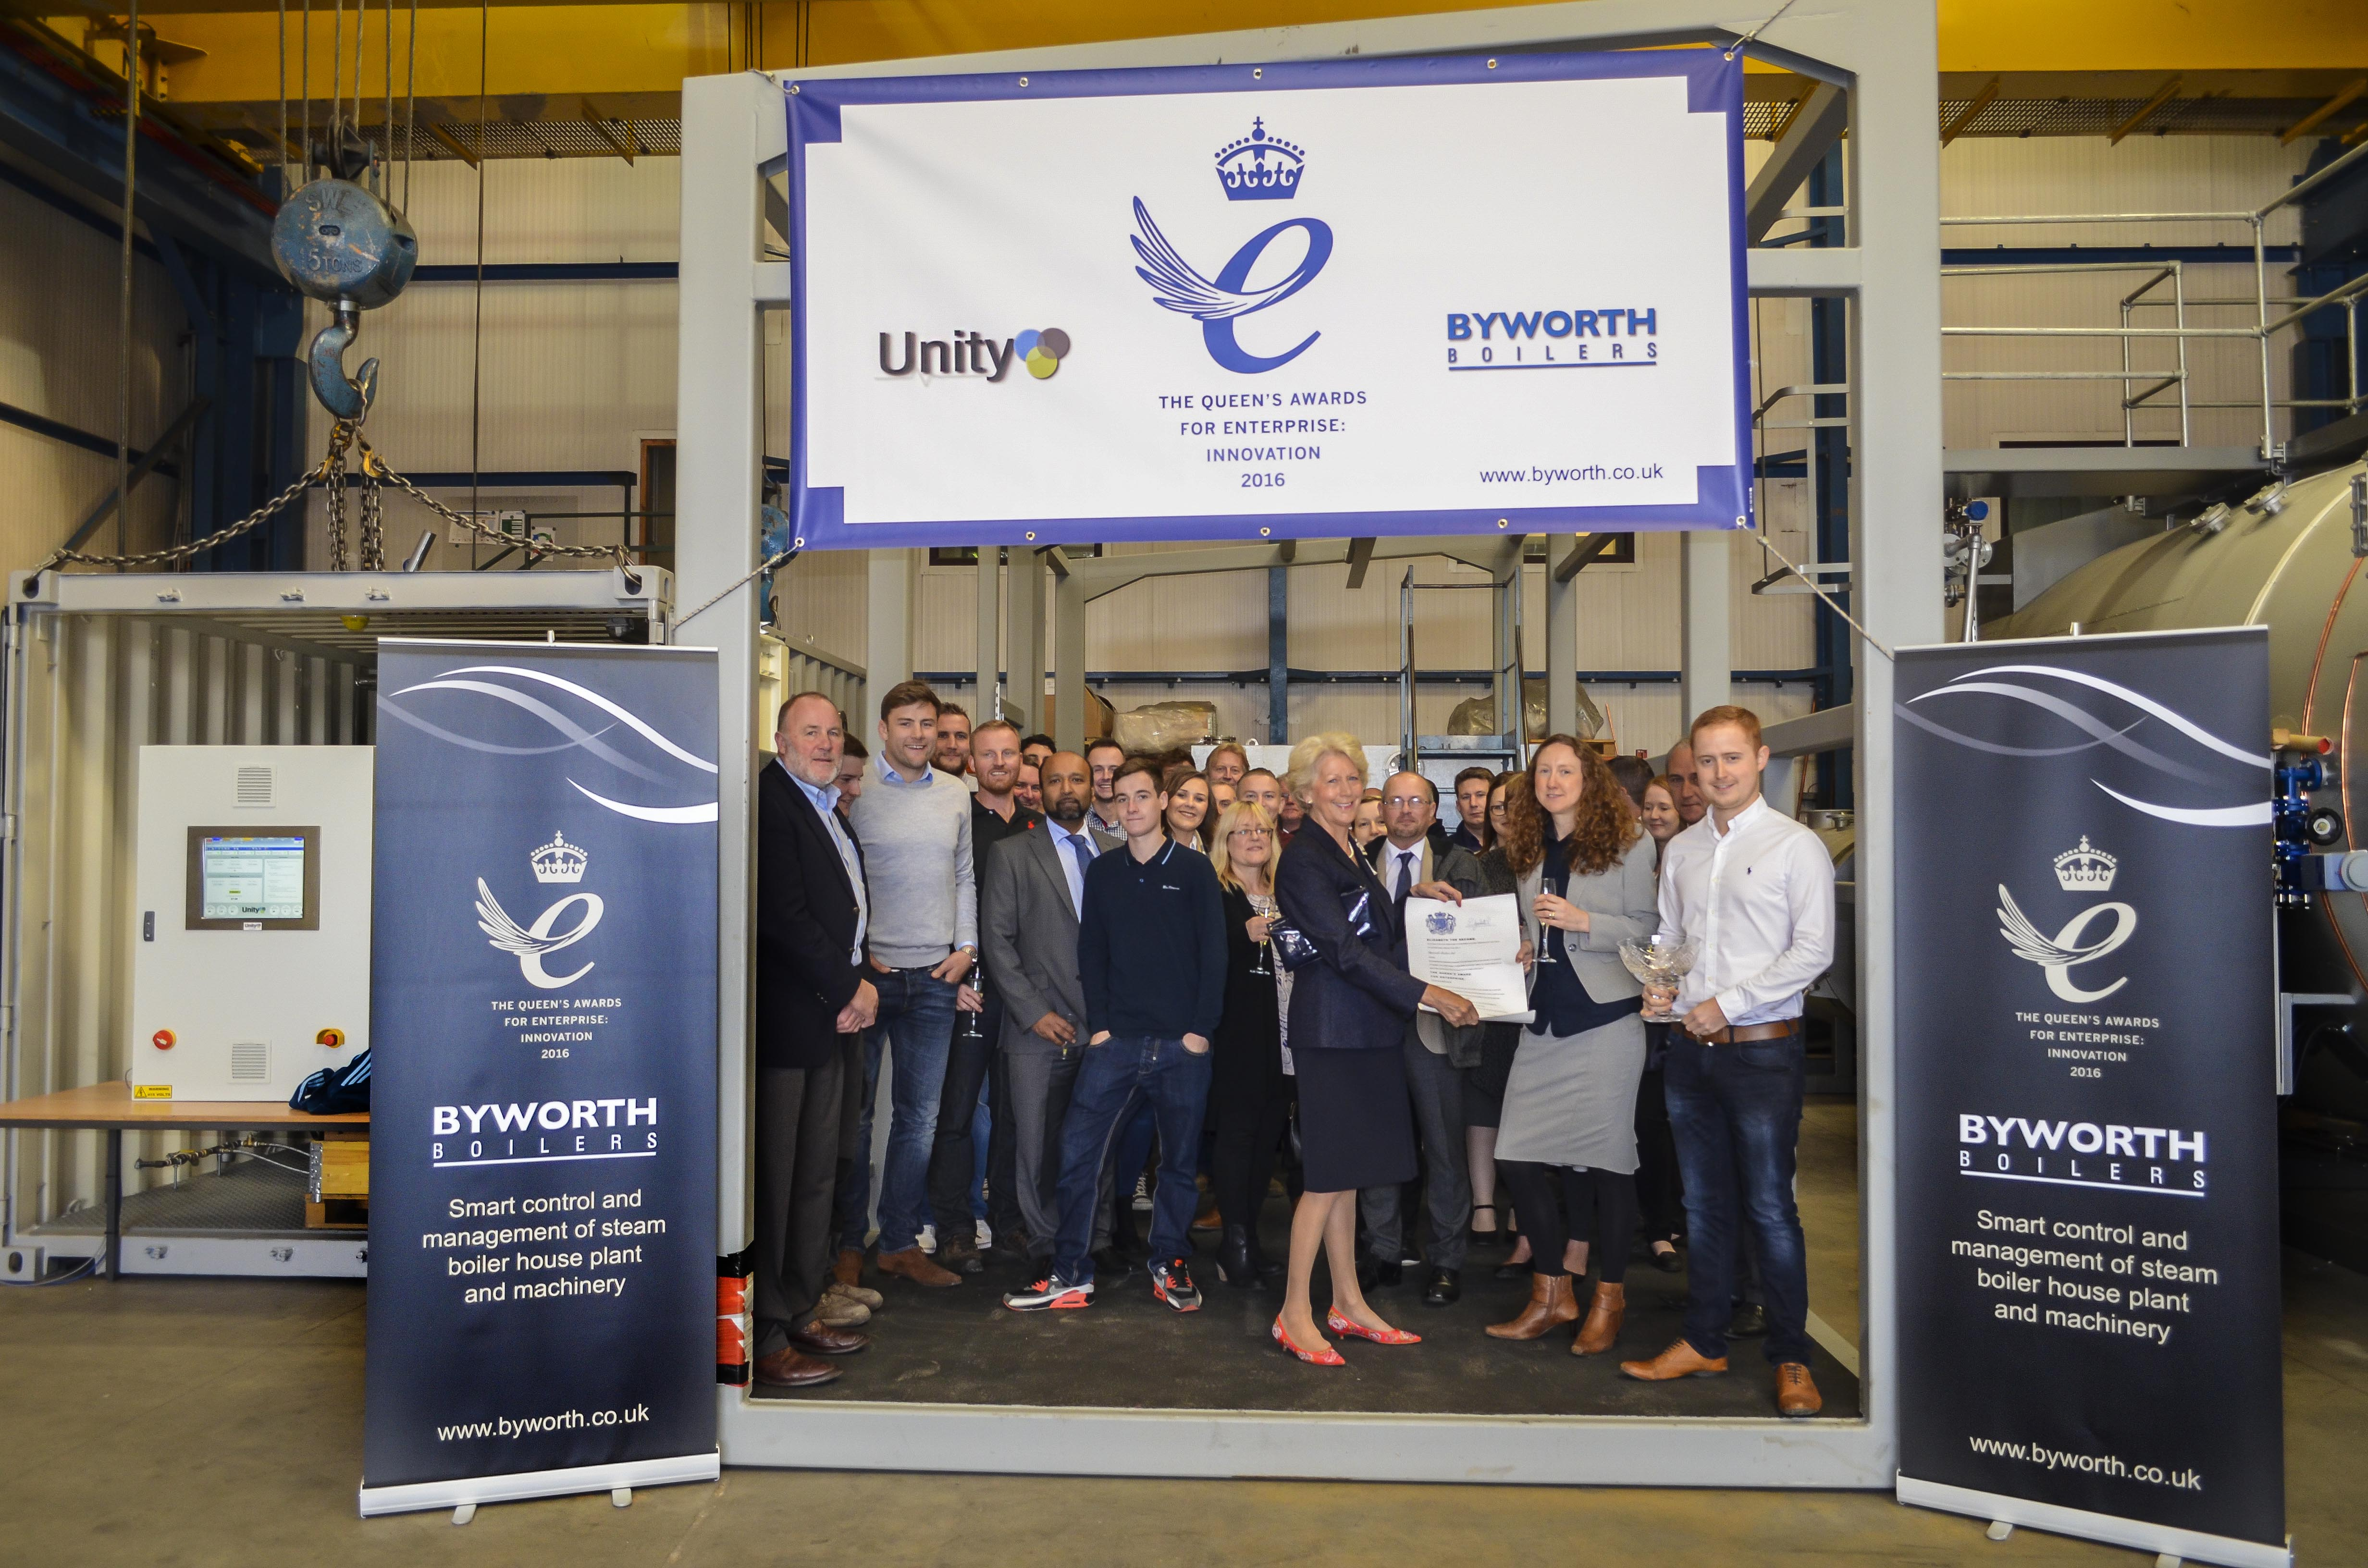 Byworth Boilers Queen's Award